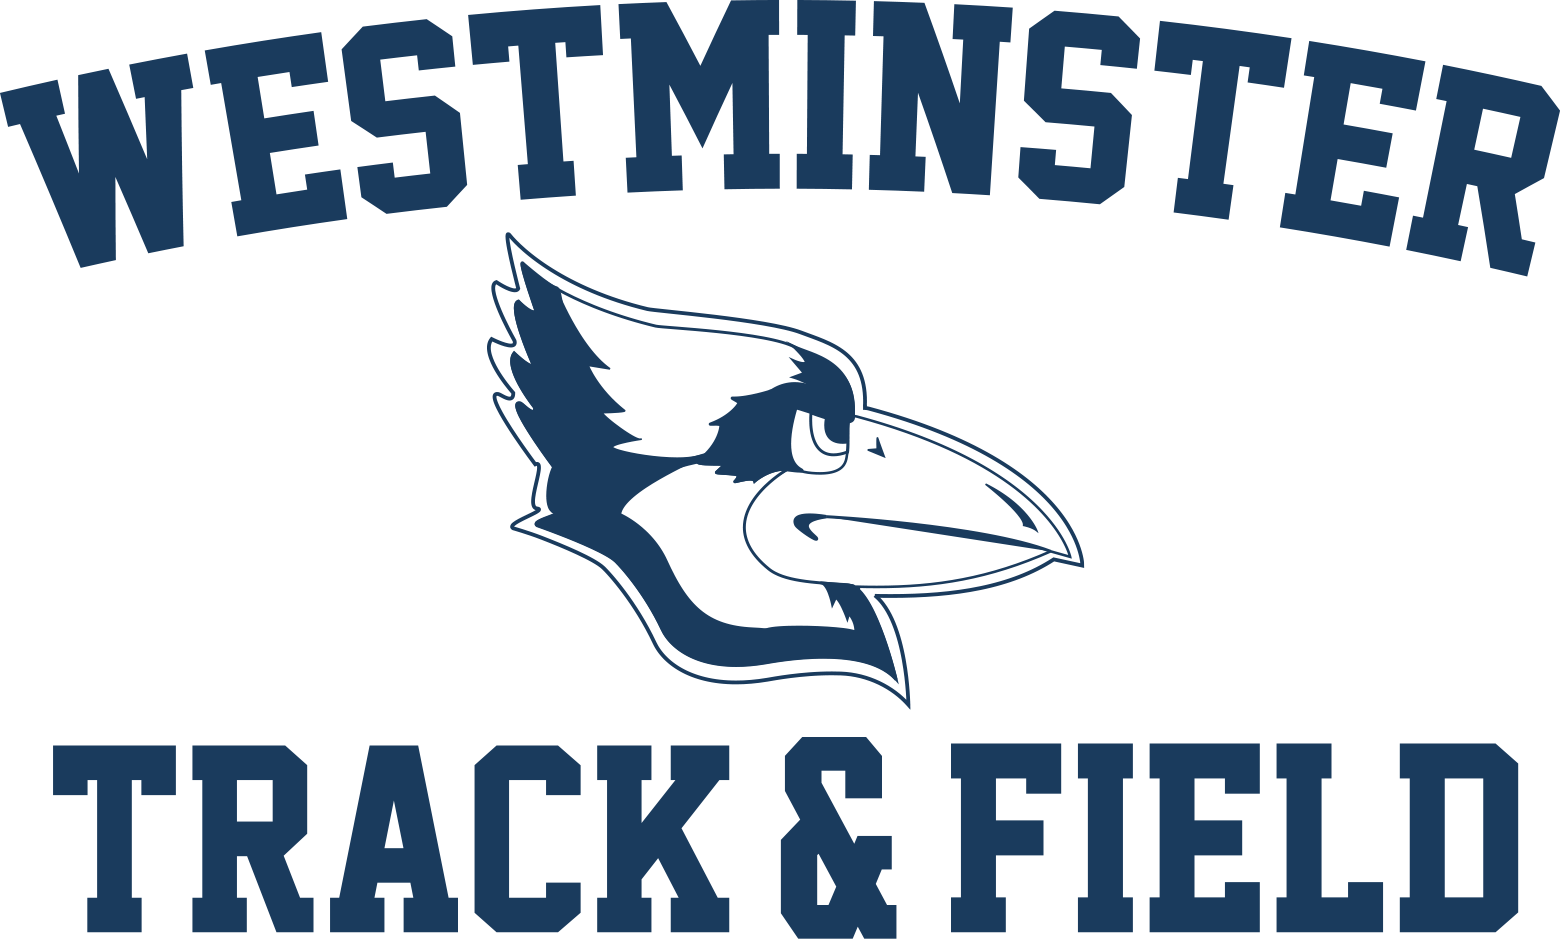 Westminster Women's Track and Field Named USTFCCCA All-Academic Team